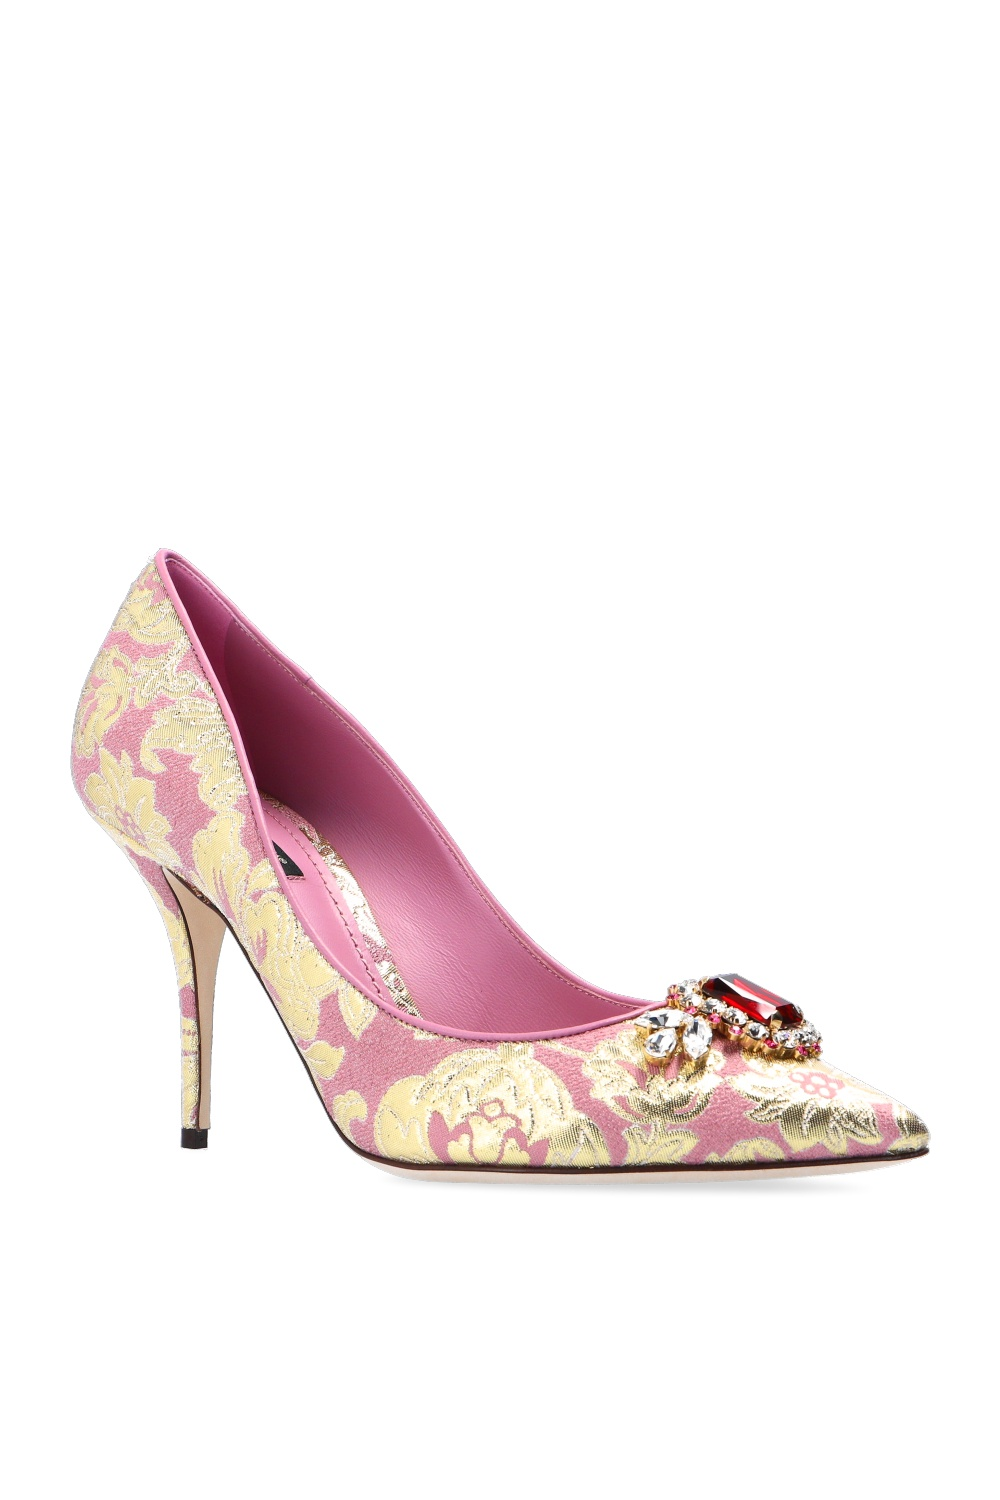 Dolce & Gabbana Stiletto pumps with logo